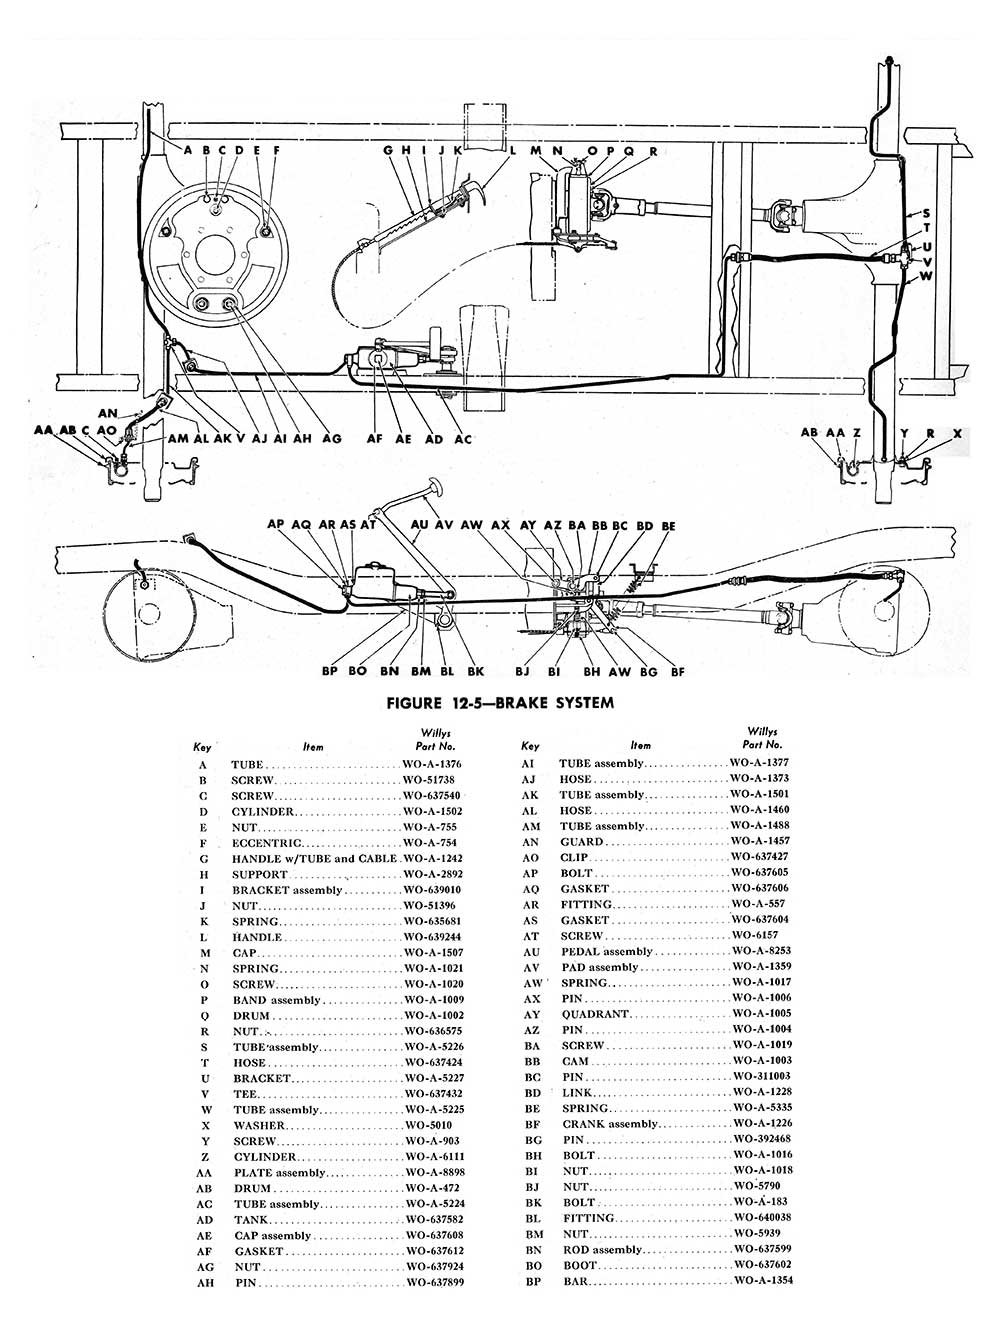 willys jeep wiring diagram for 1957